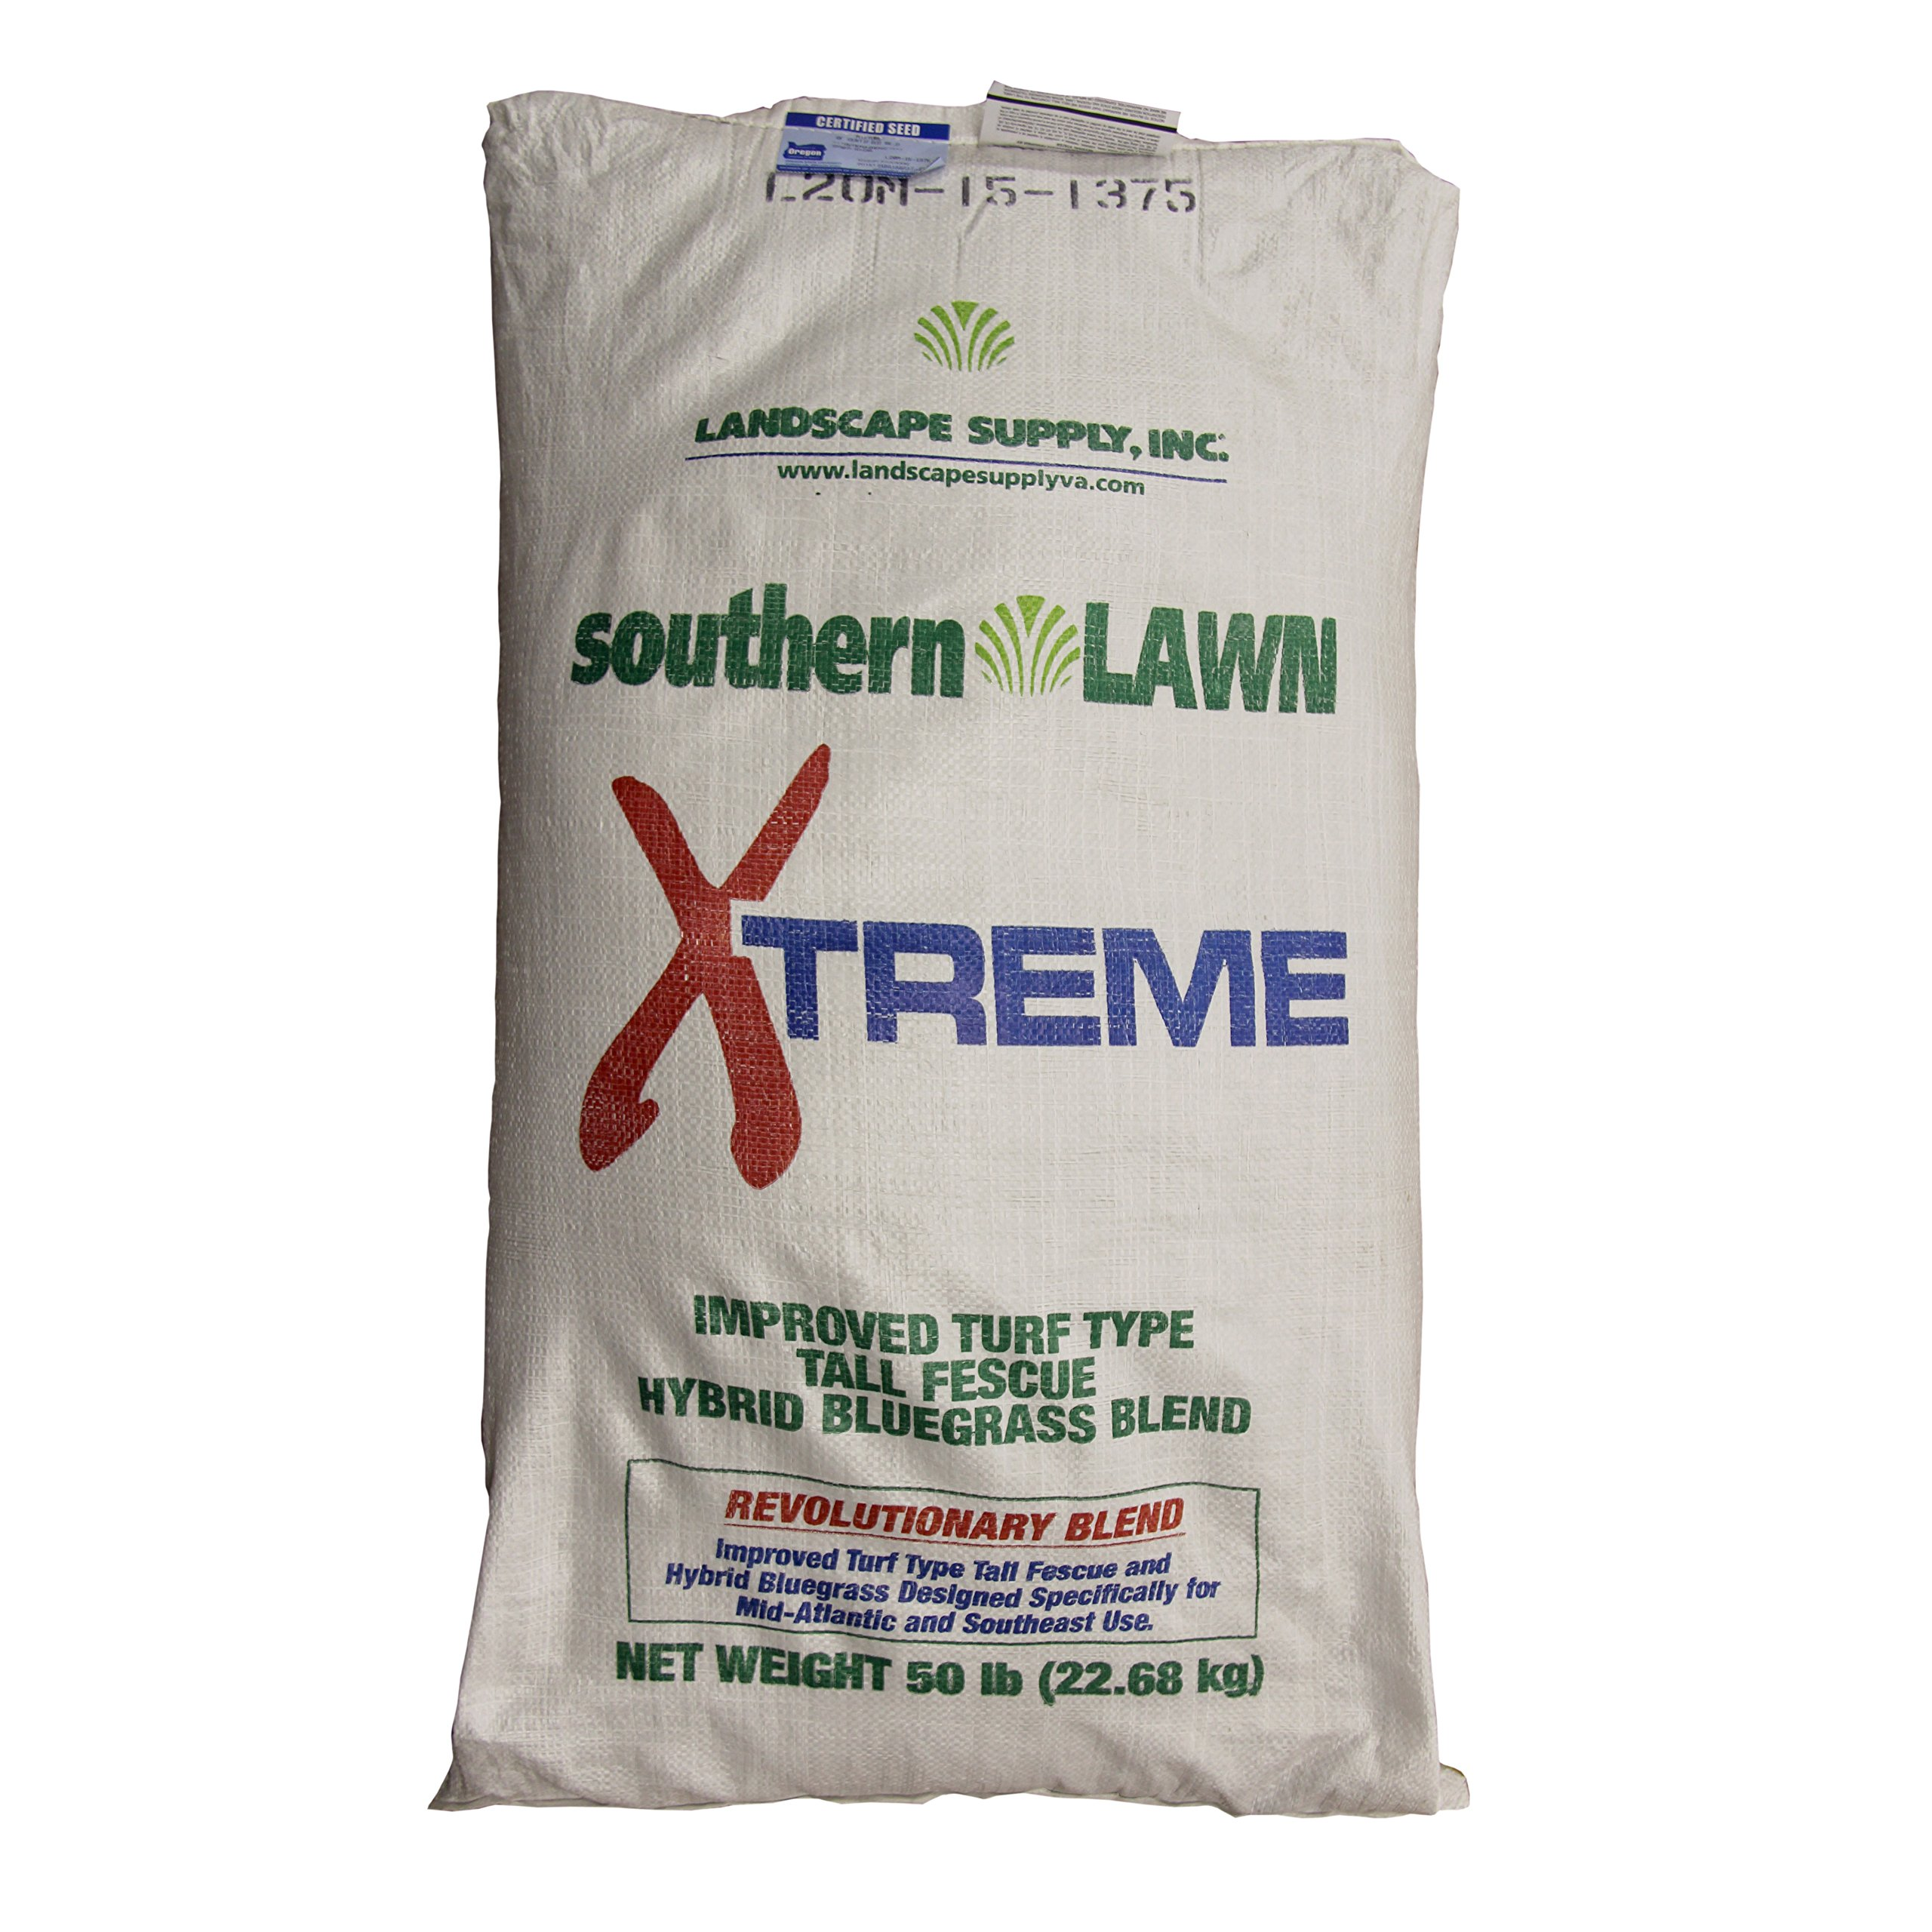 southernLAWN XTREME Premium Blue Tag Certified Turf Type Tall Fescue, 50 Pound Bag